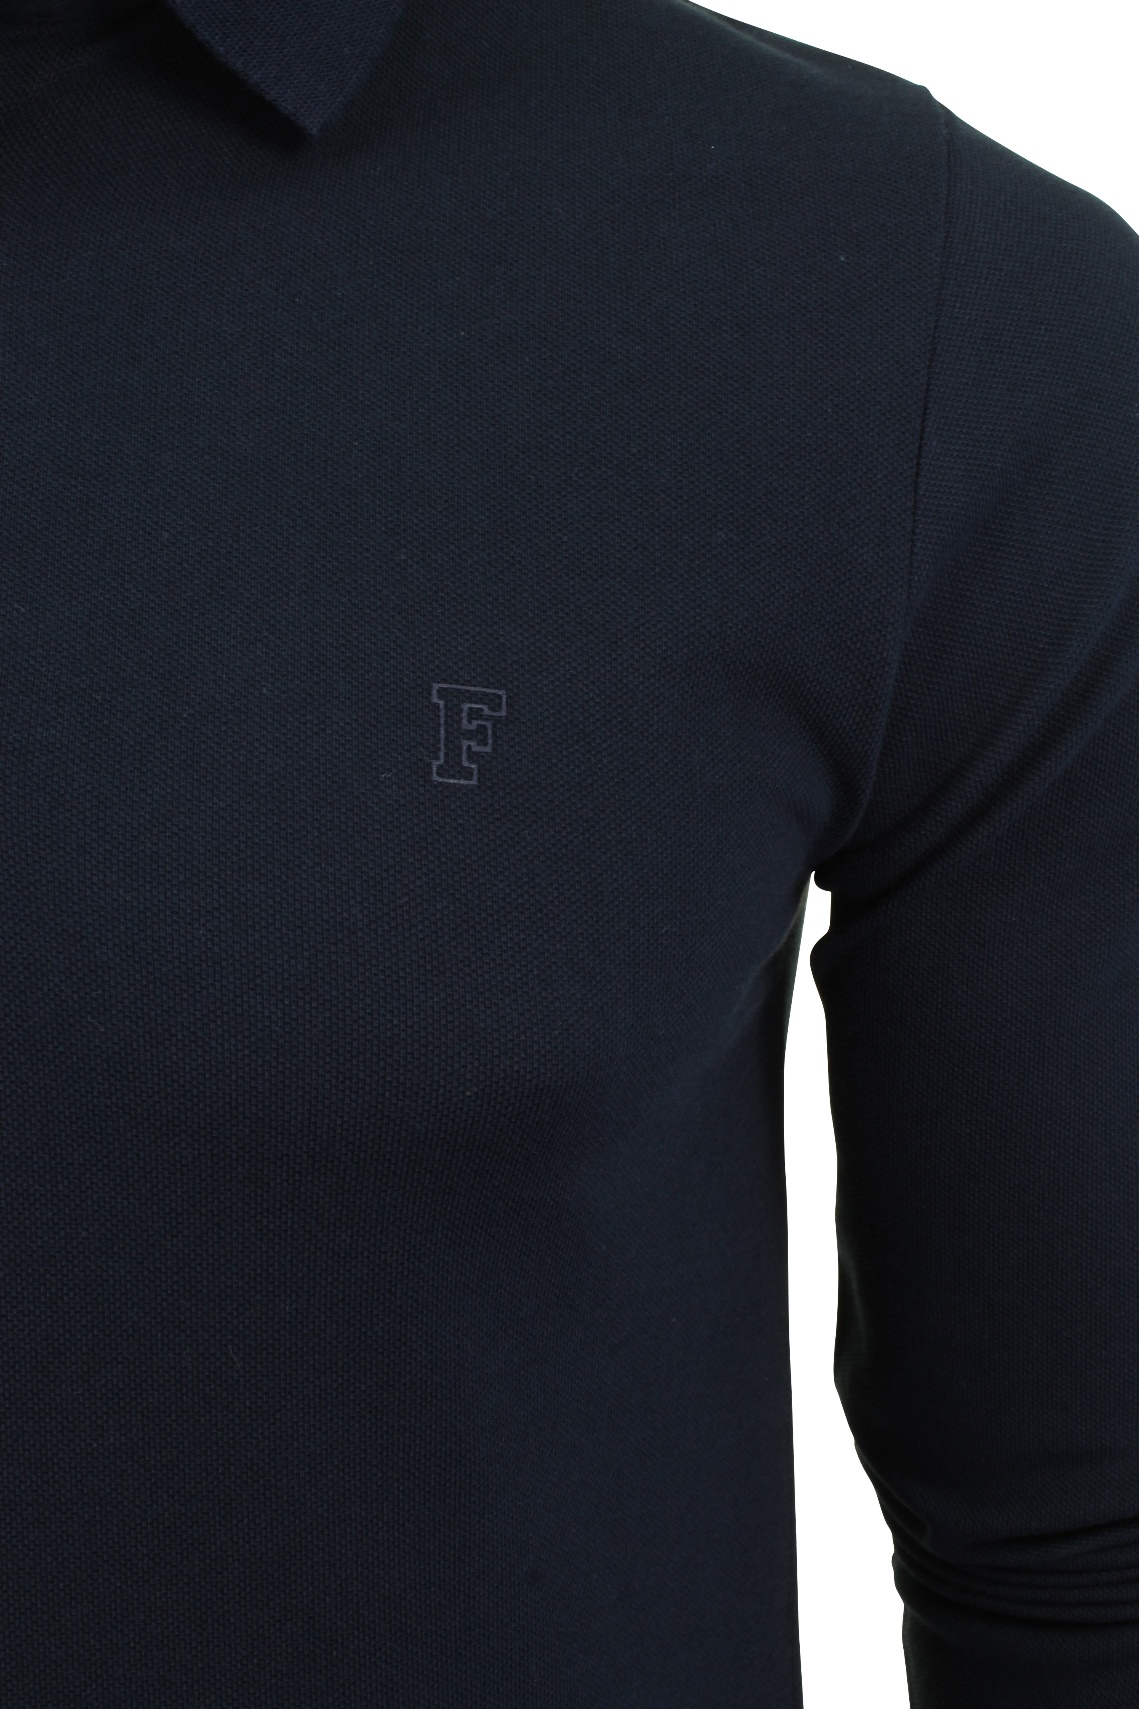 Mens-Polo-T-Shirt-by-FCUK-French-Connection-Long-Sleeved thumbnail 7